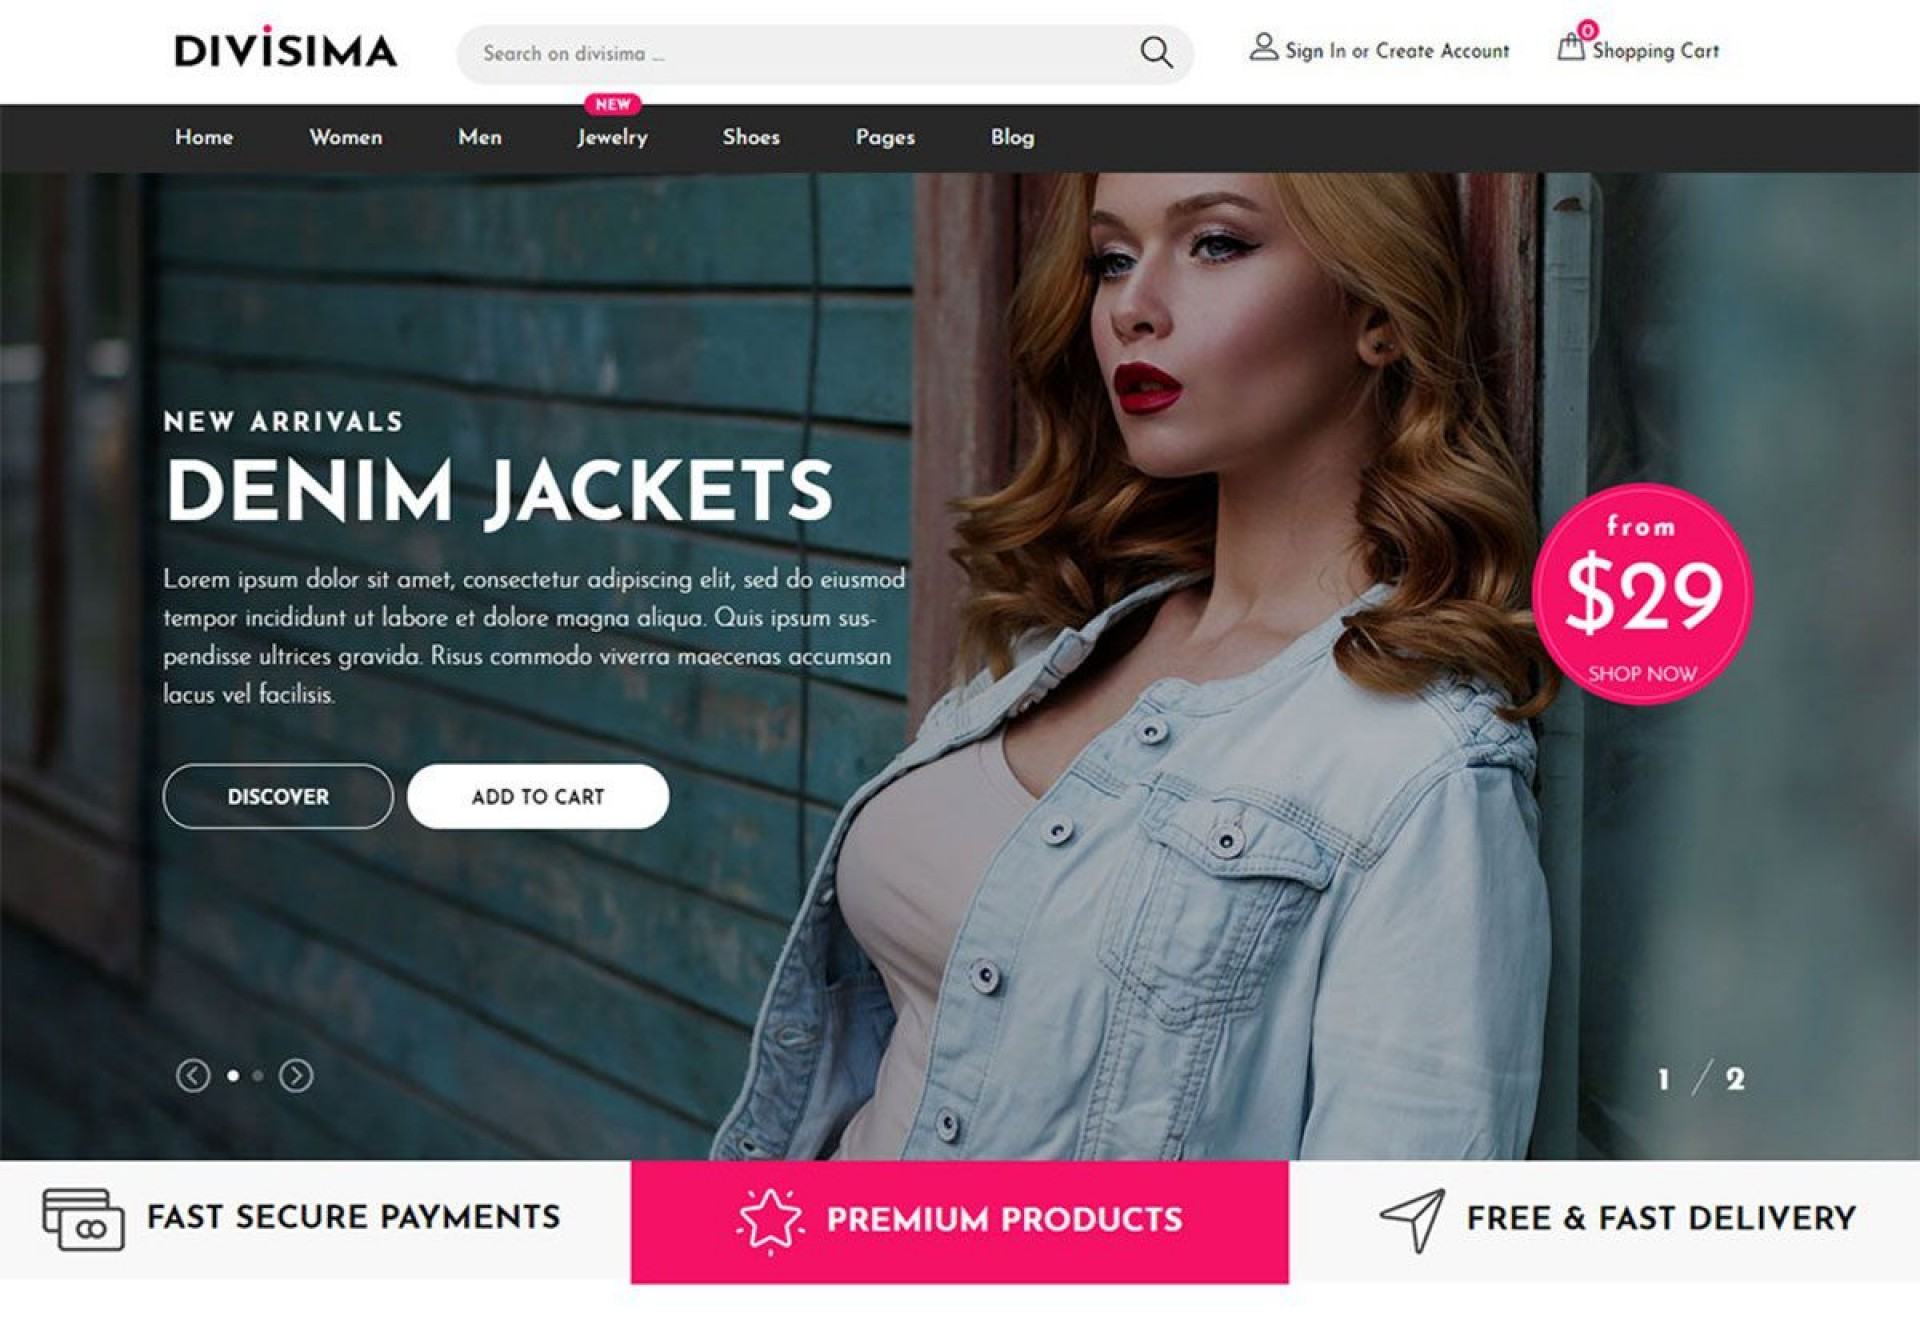 003 Stirring Free Ecommerce Website Template Example  Templates Github For Blogger Shopping Cart Wordpres1920